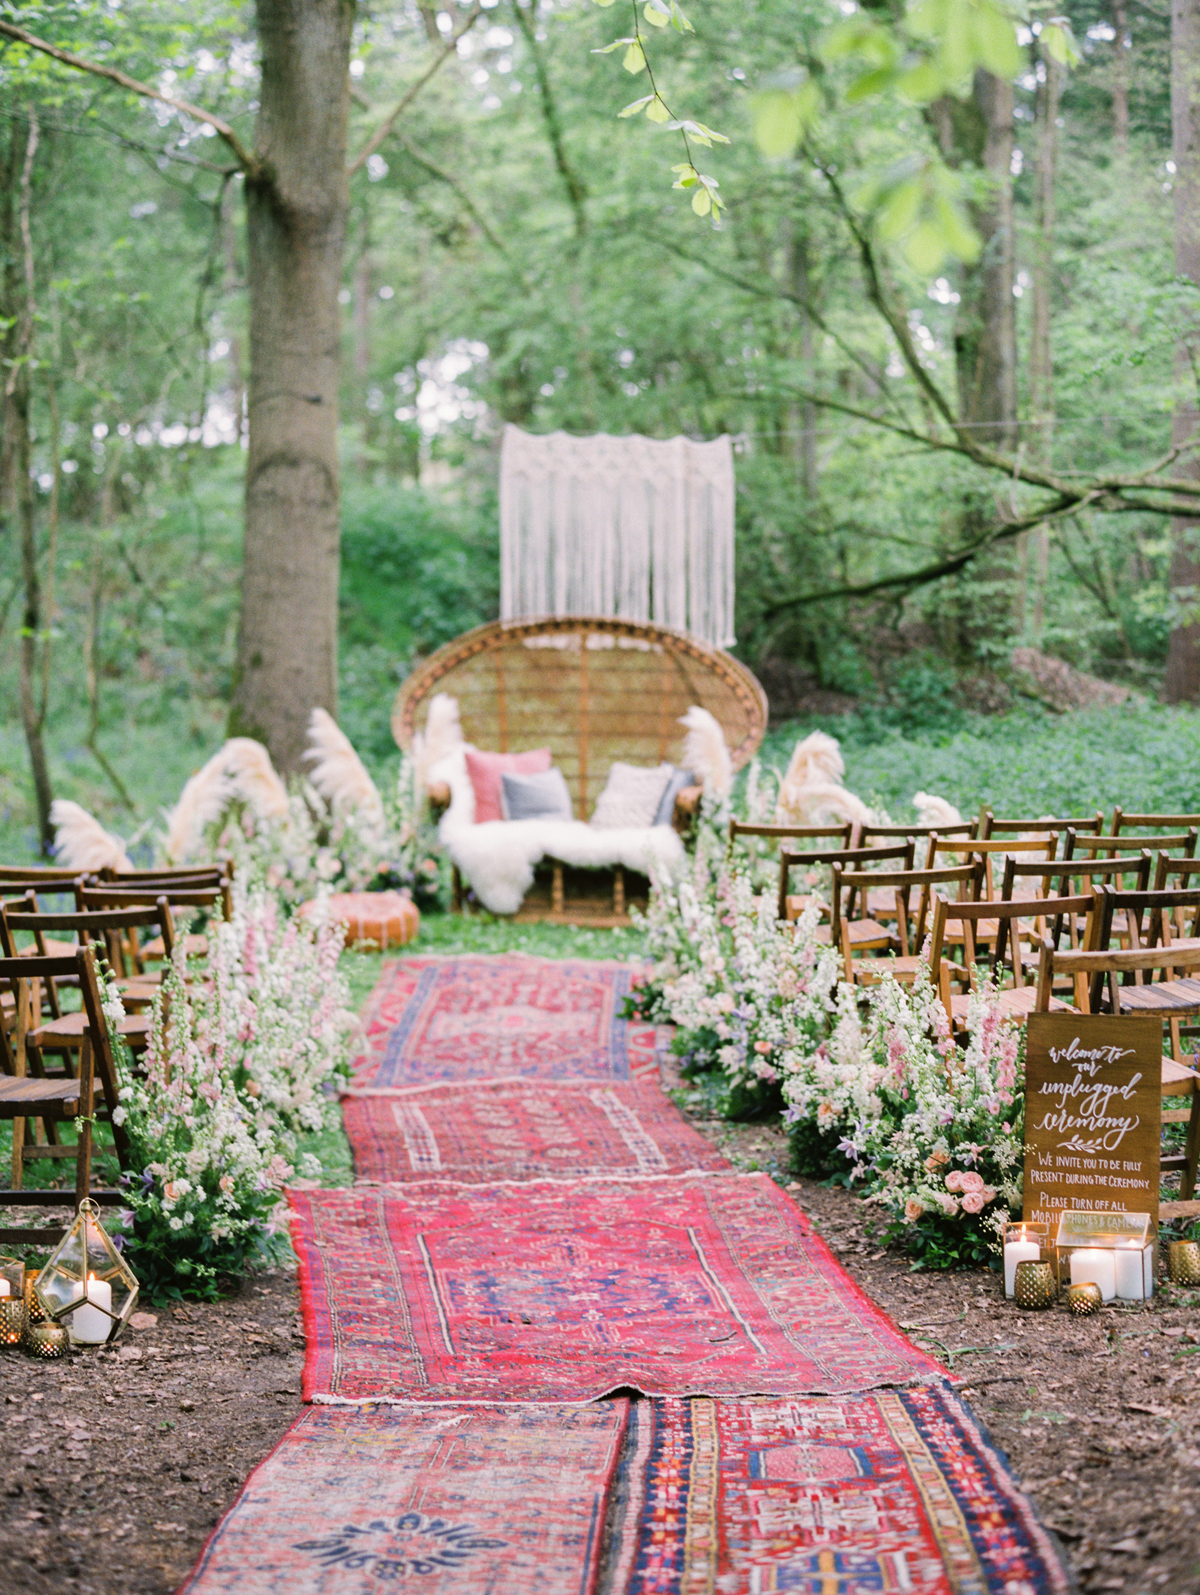 This image is from a styled shoot at Greenacres (eco friendly venue!) featured on  Love my Dress